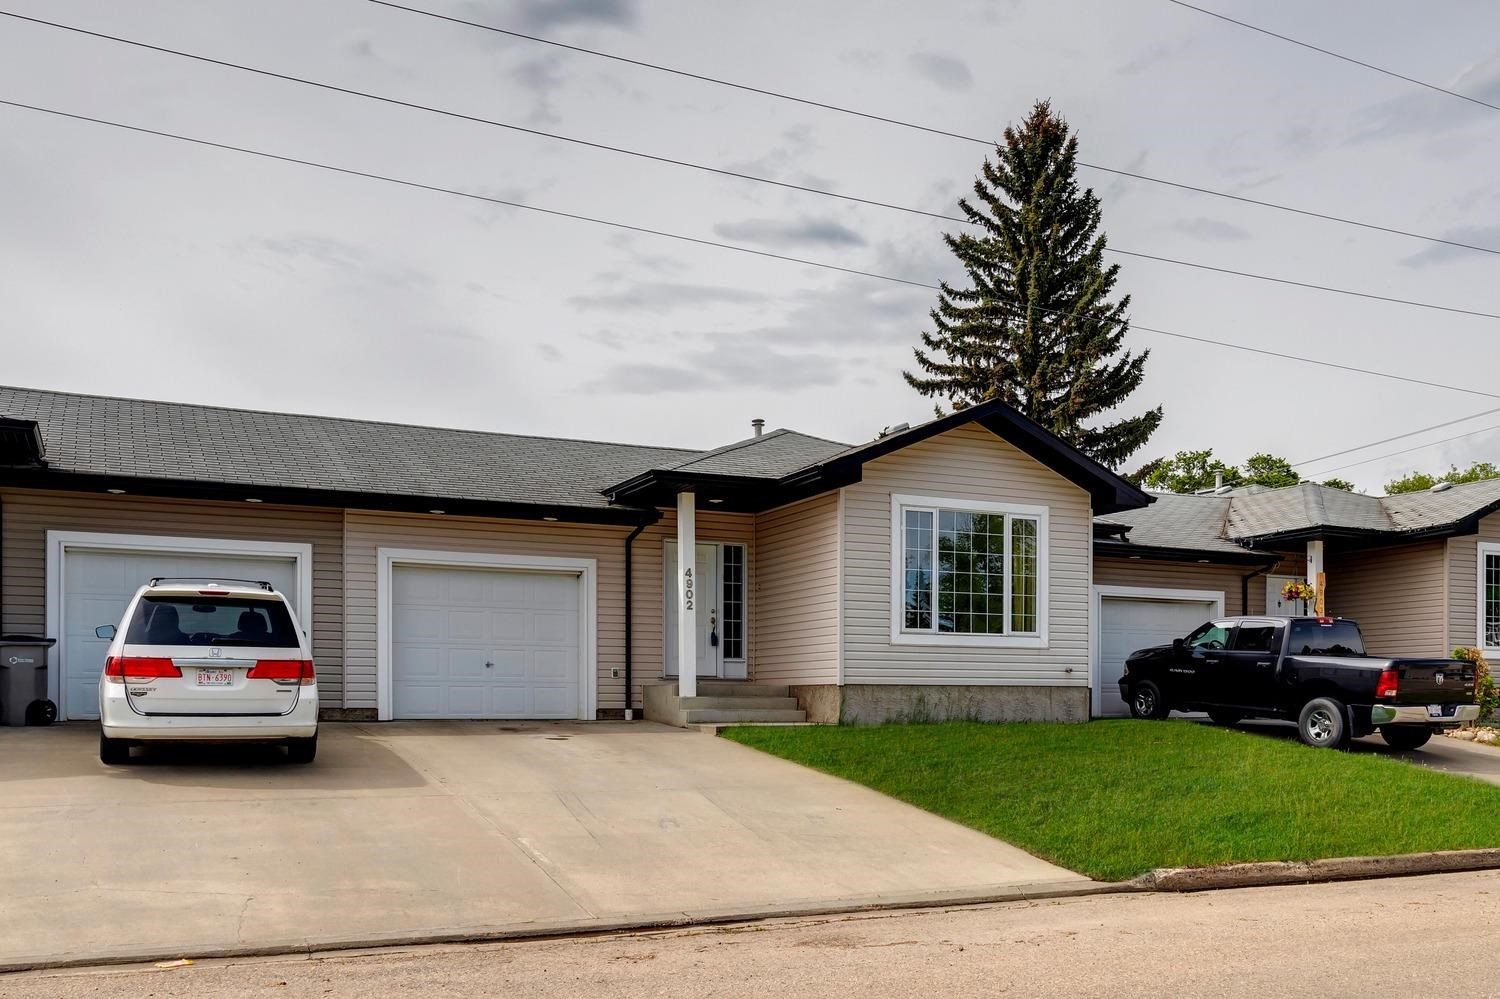 Terrific investment opportunity in Calmar. Nicely appointed tri-plex located across the street from a school/park area. This 1200 sqft bungalow offers 2+1 bedrooms, 3 full baths, 2nd kitchen/laundry in basement, and has been very well maintained. Bright and spacious main floor, open living area, good sized bedrooms, new main bath, 4-pc ensuite, and new appliances. Fully finished basement features good sized kitchen/living areas, huge bedroom, and 3-pc bath. Single attached garage, deck, fully fenced and landscaped. Perfect for an investor or mortgage helper.